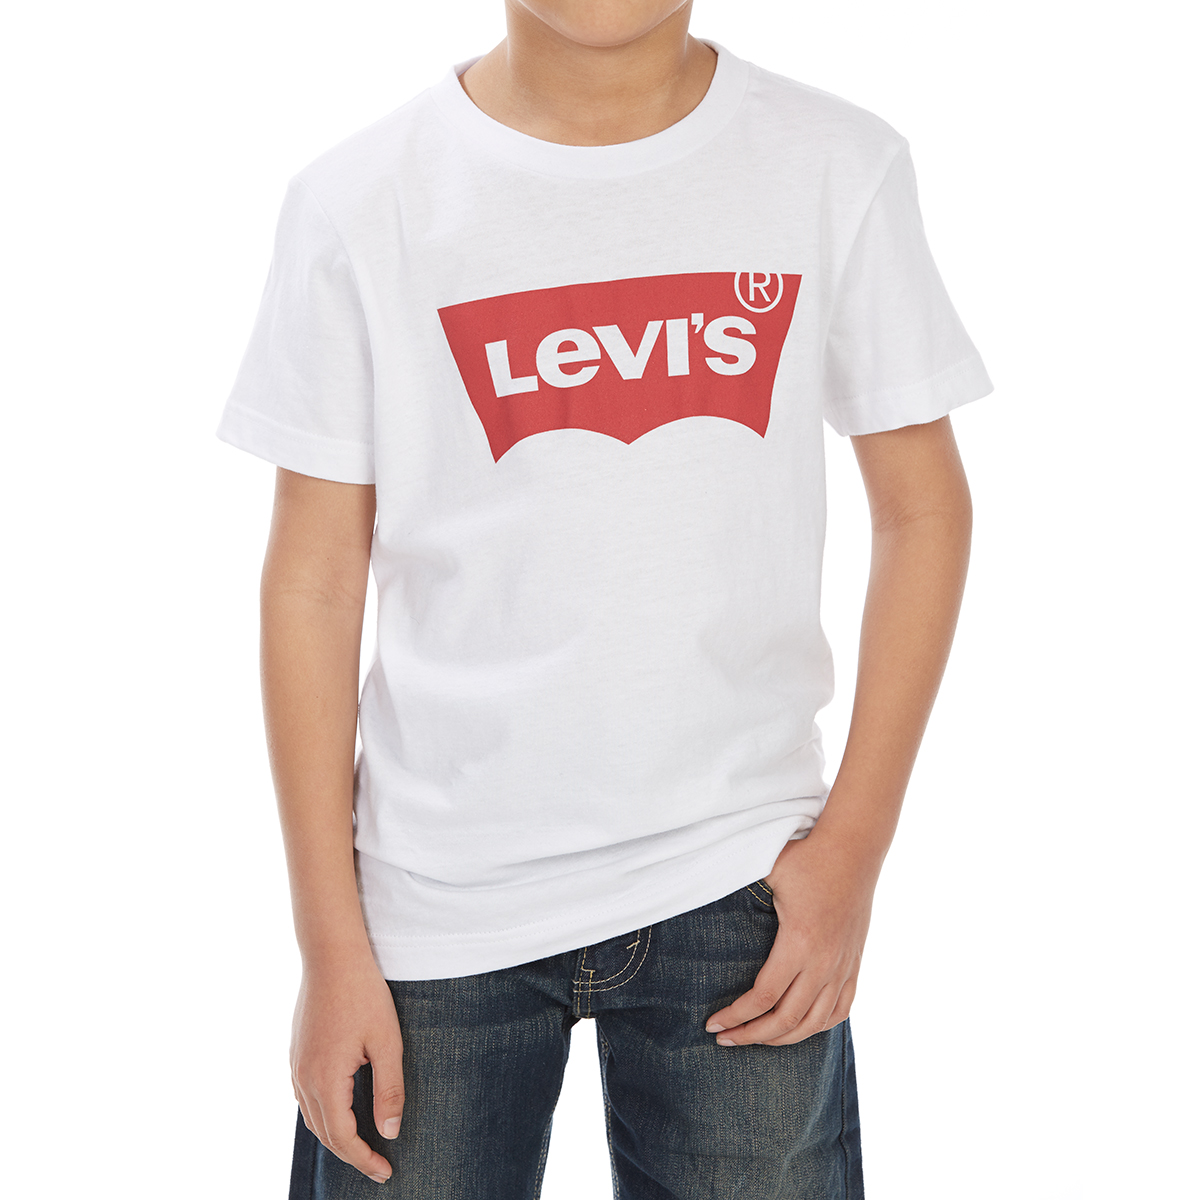 Levi's Big Boys' Batwing Short-Sleeve Tee - White, M